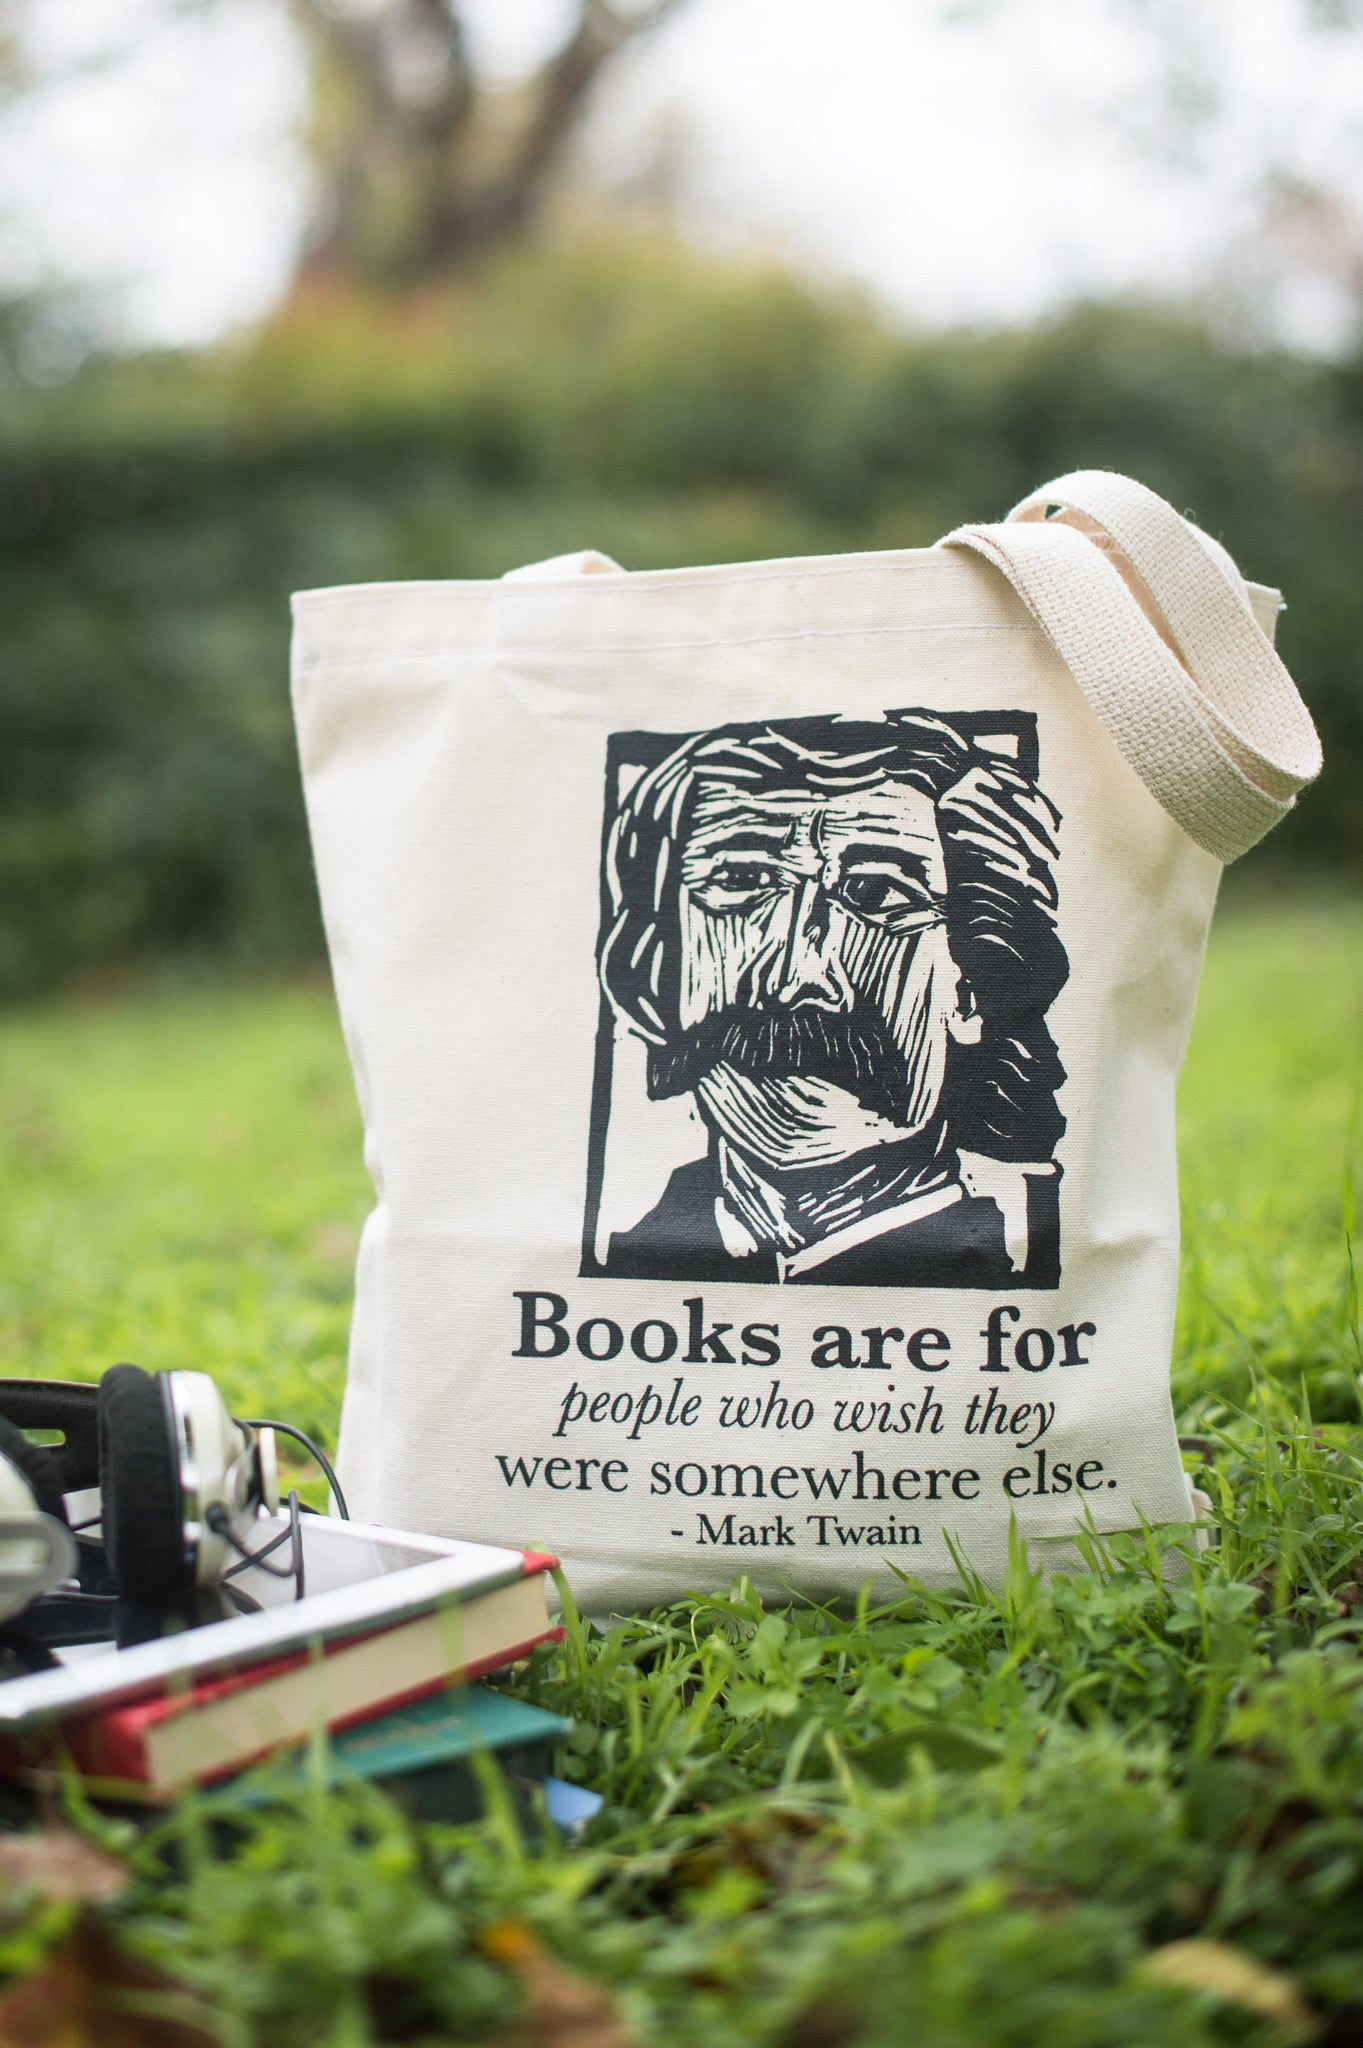 Mark Twain Art Print on totebag with quote and books Literary gift by Eastgrove Studio